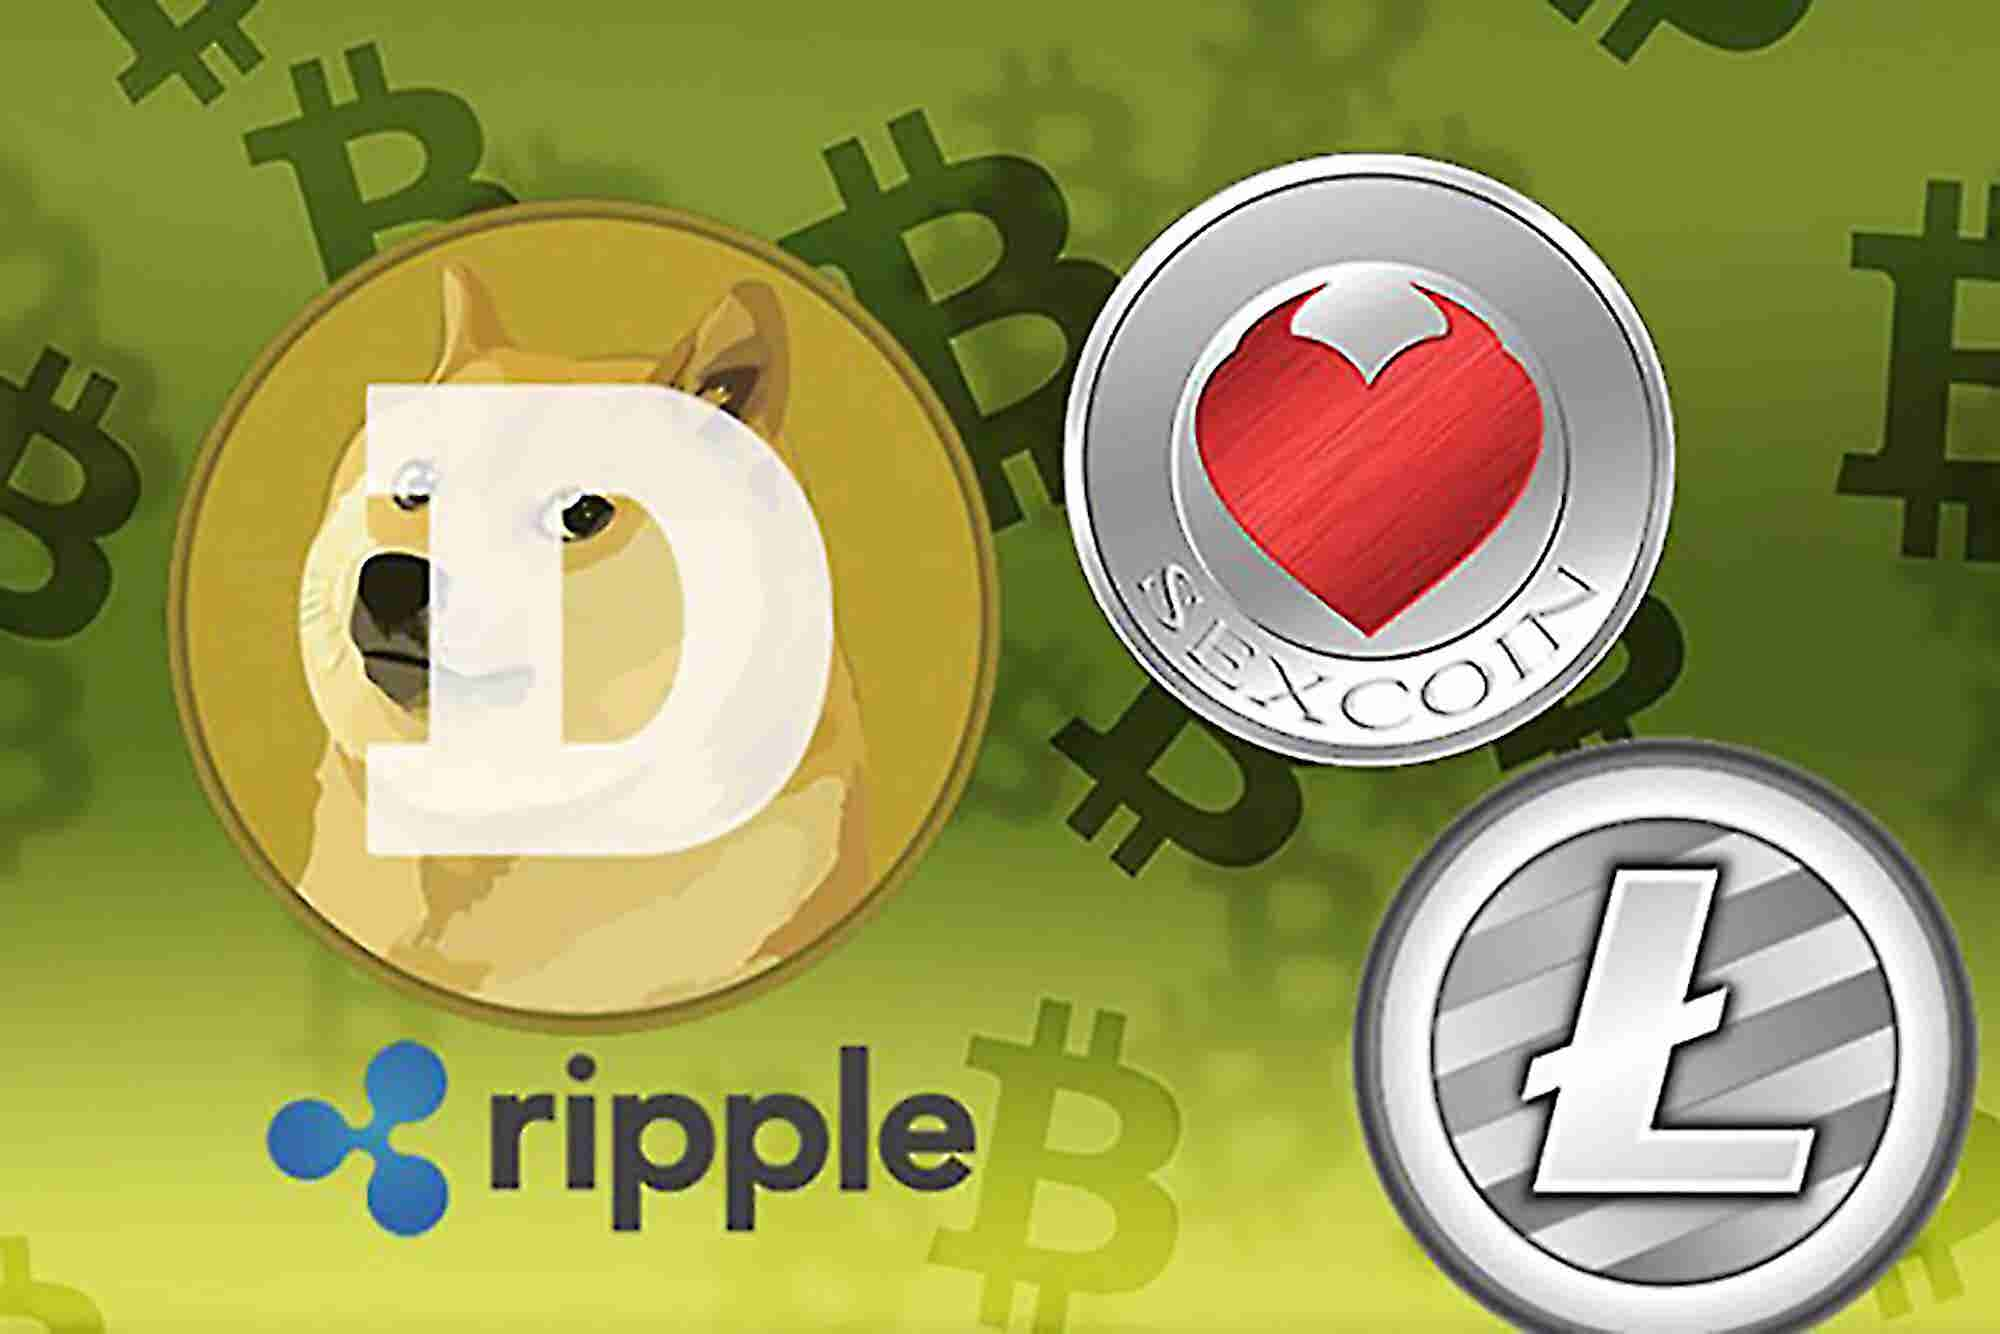 SexCoin, Dogecoin, HoboNickel, Ripple: Should You Take These Bitcoin W...